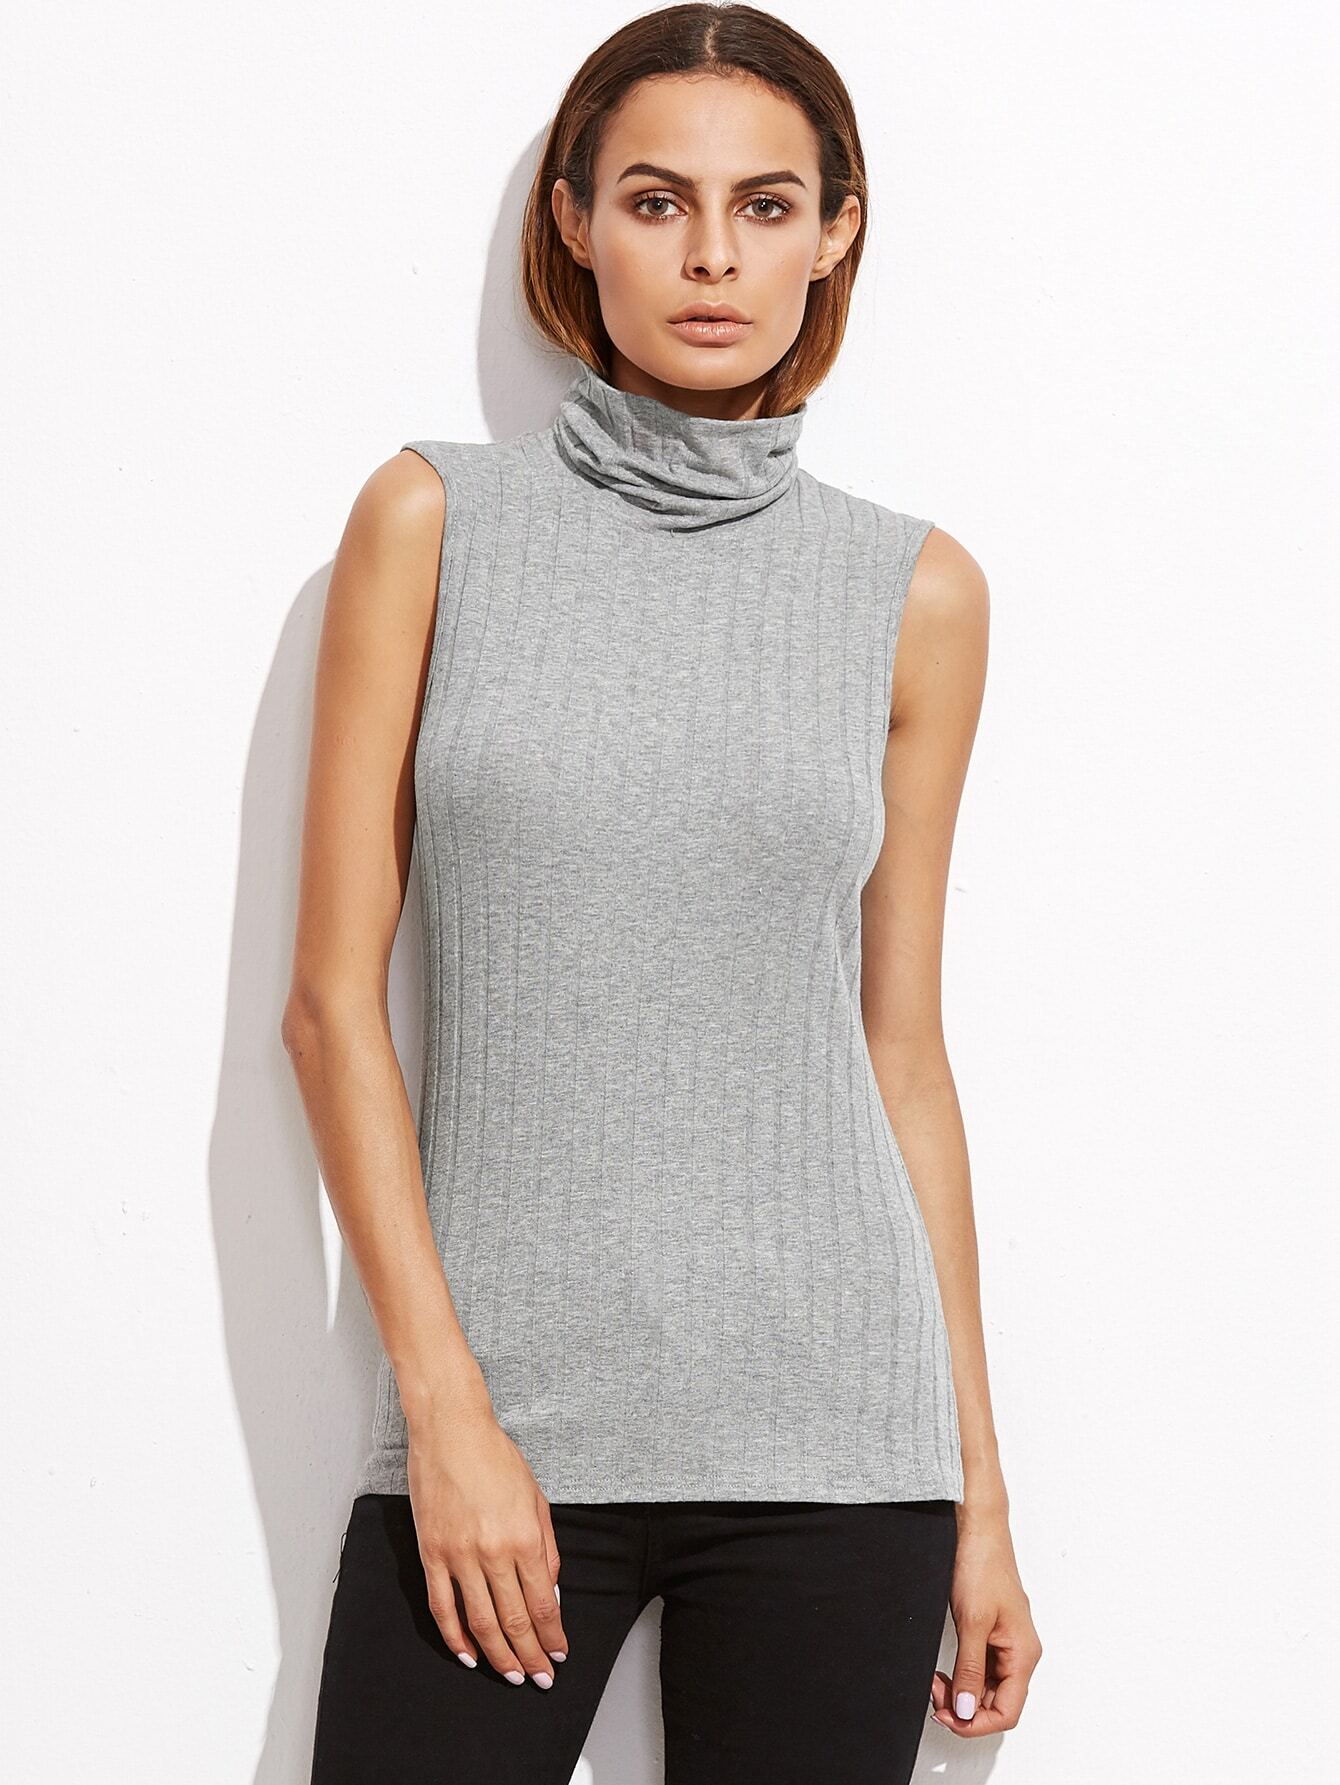 Heather Grey Cowl Neck Ribbed Sleeveless Top vest161018701